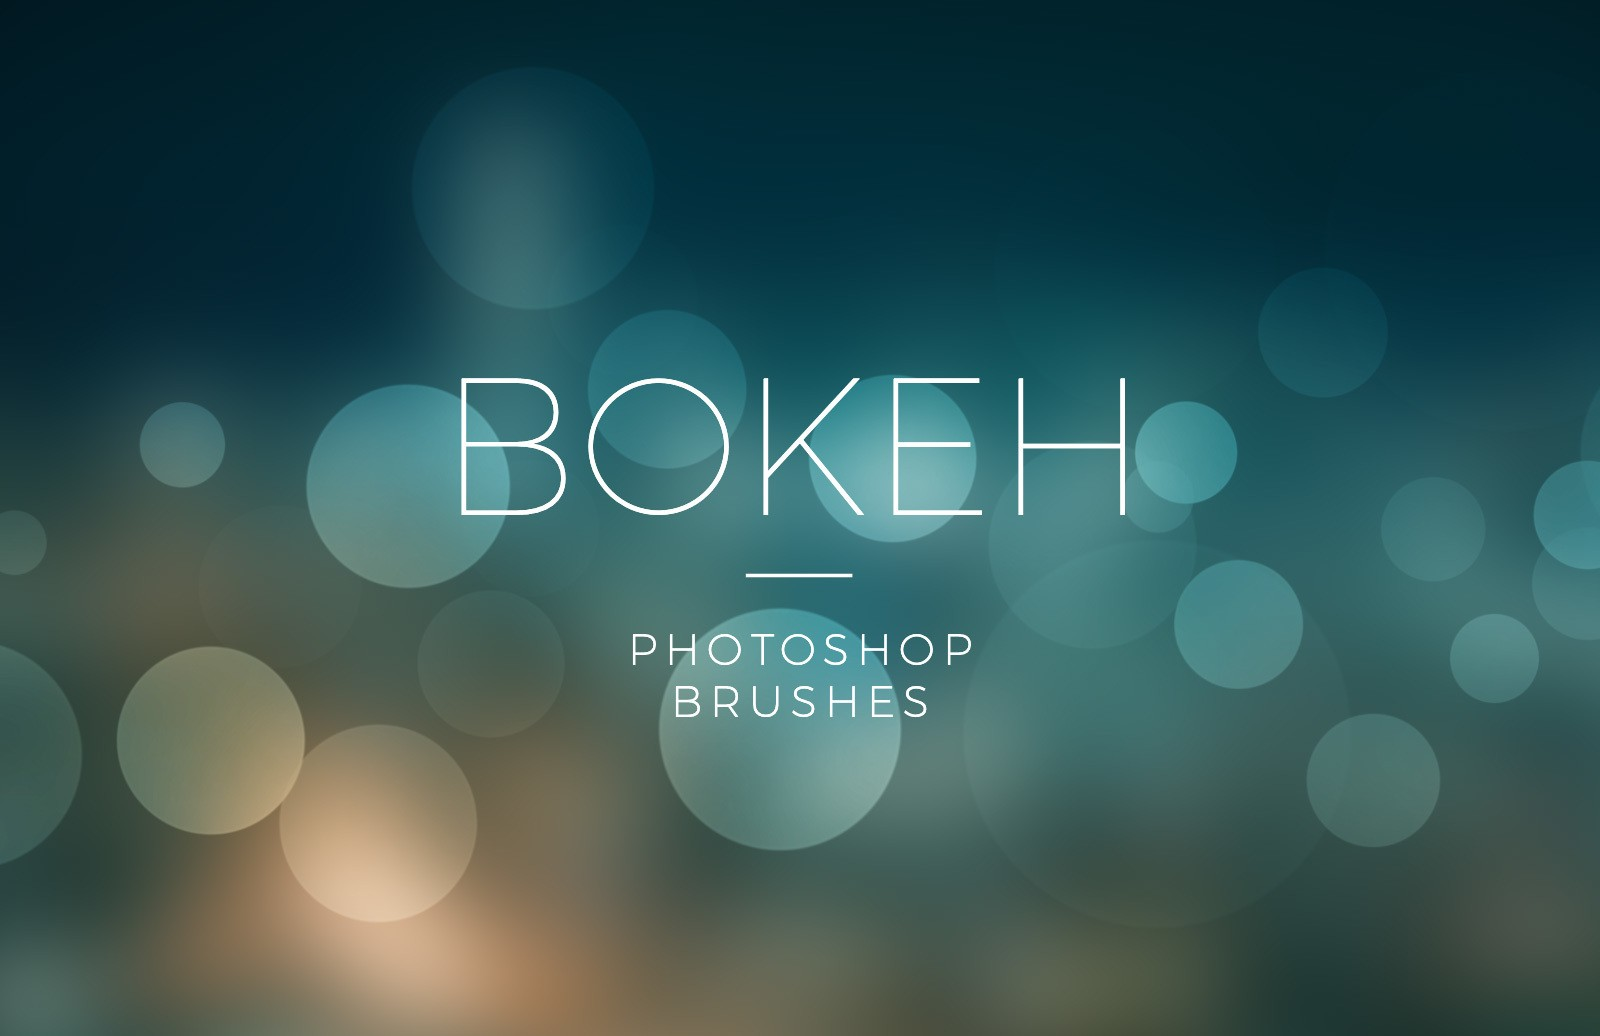 Bokeh - Free Photoshop Brushes